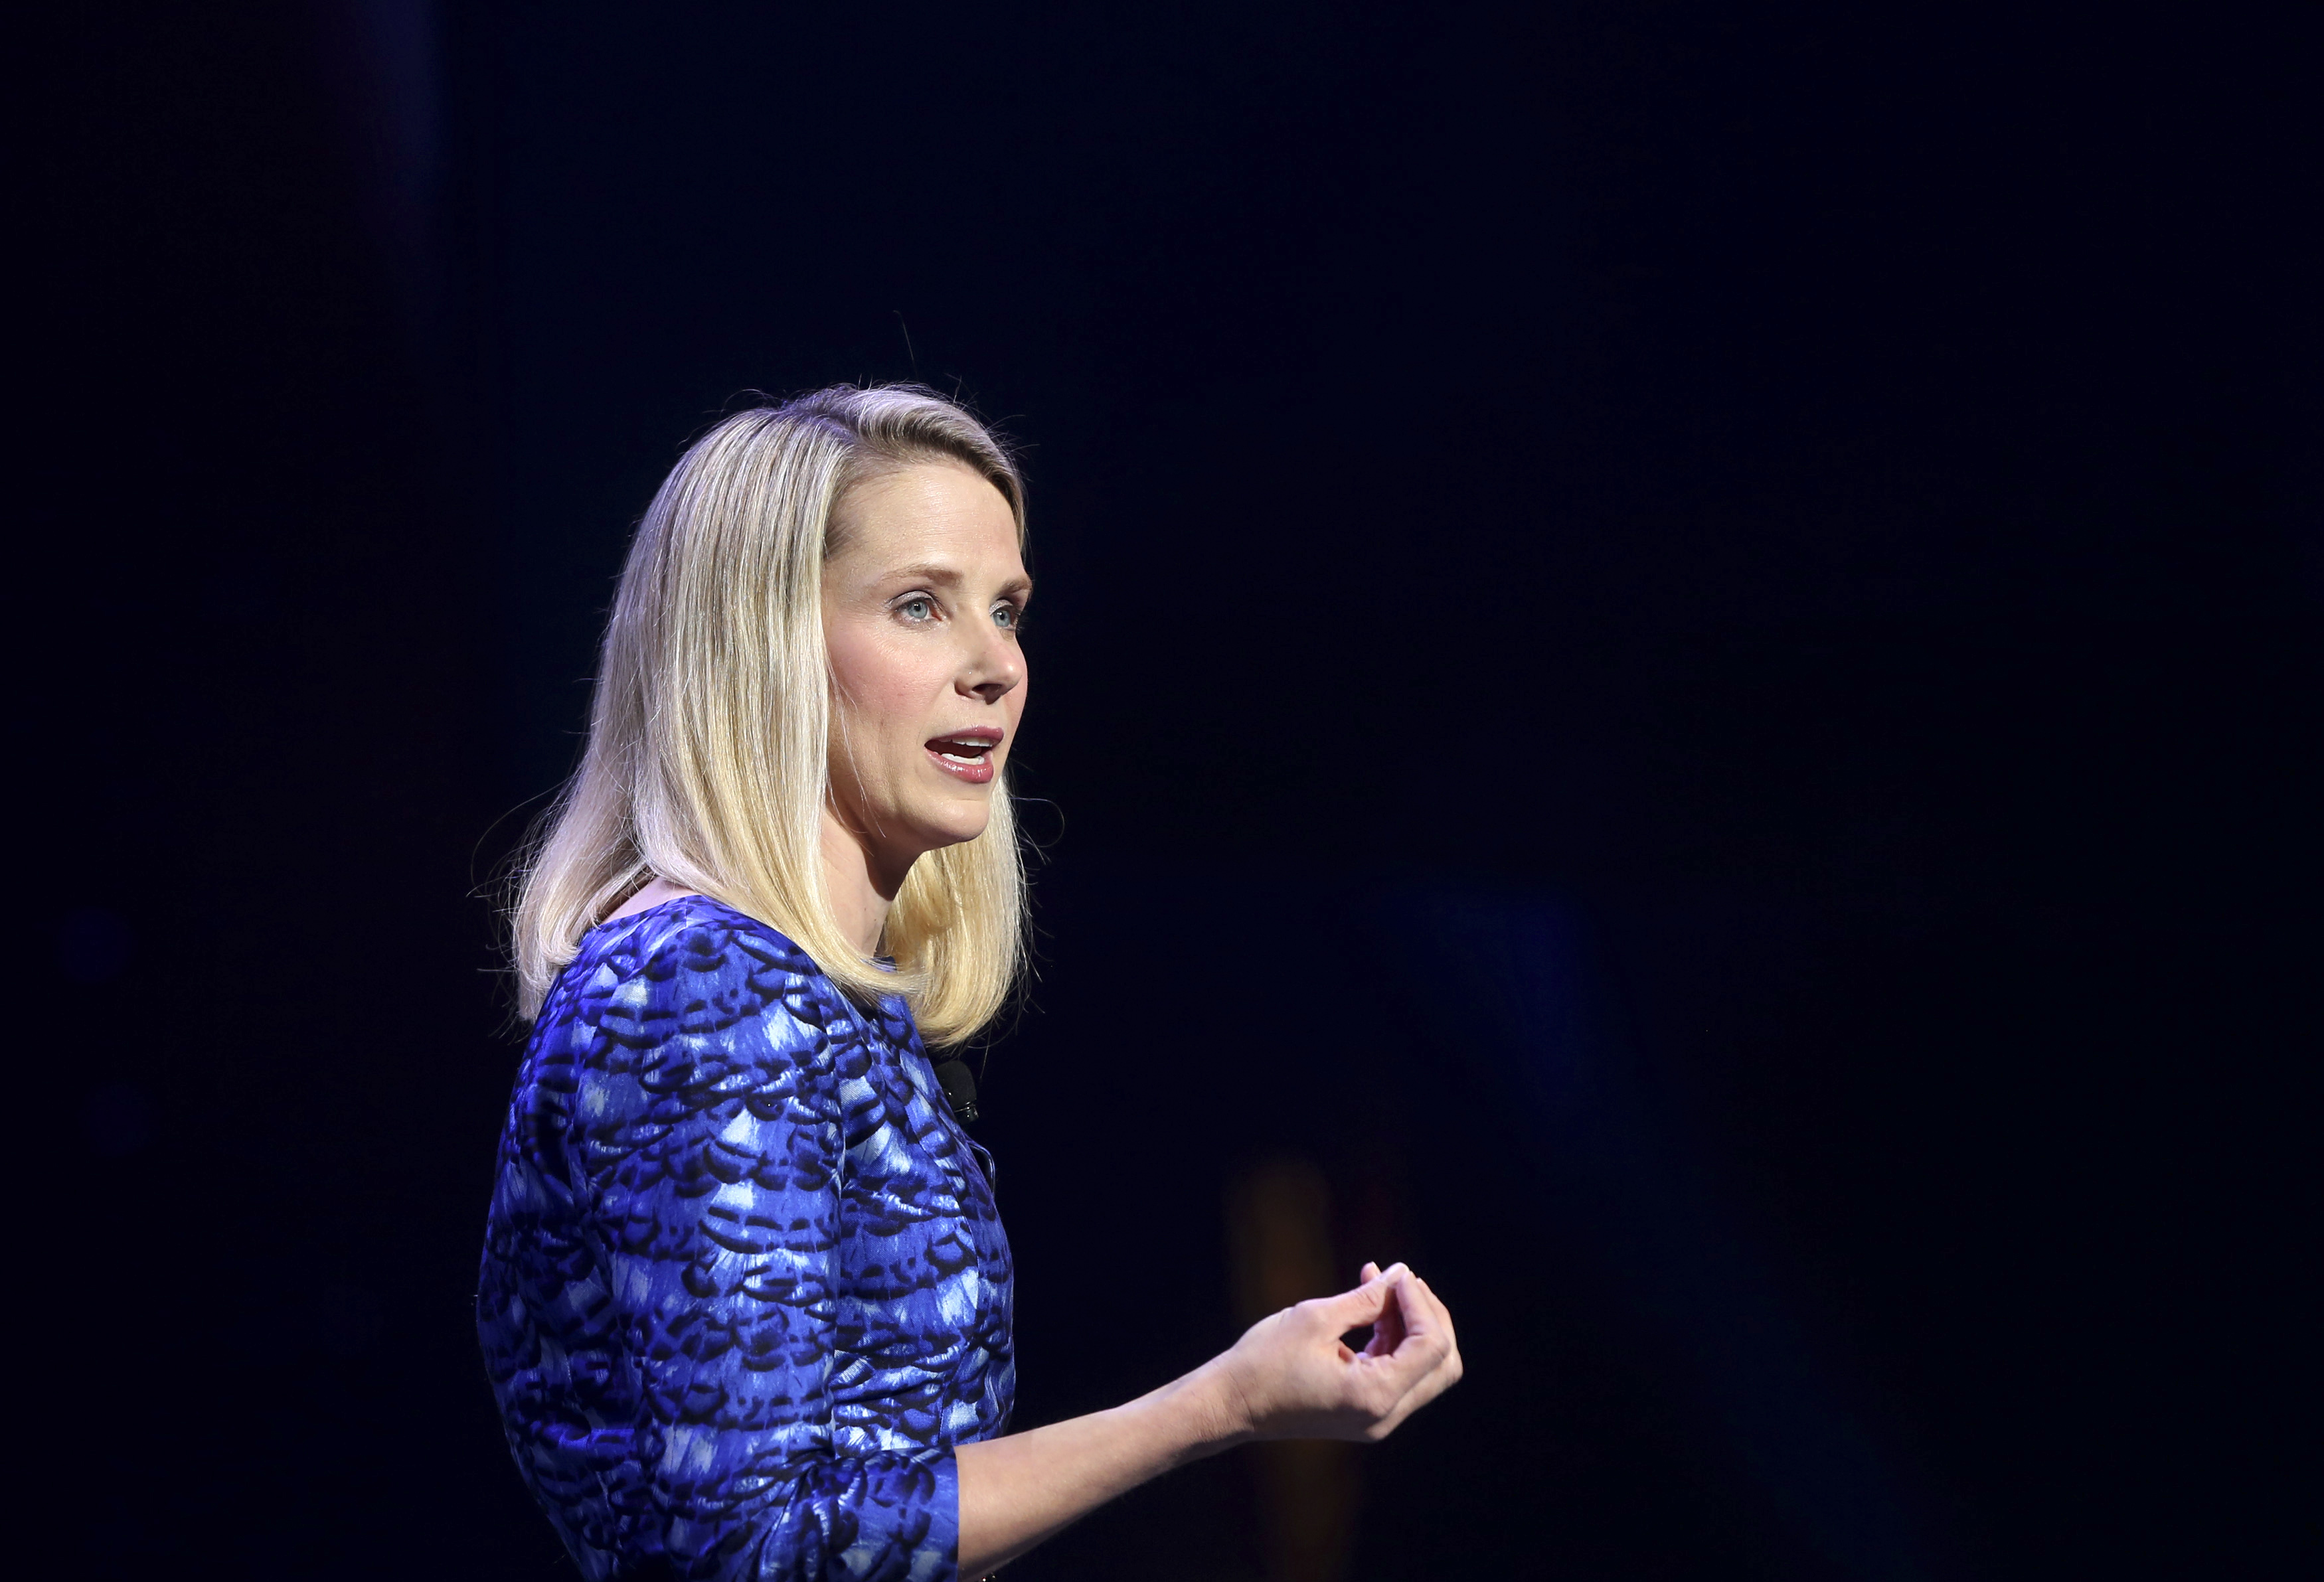 Yahoo CEO Marissa Mayer speaks during her keynote address at the annual Consumer Electronics Show (CES) in Las Vegas